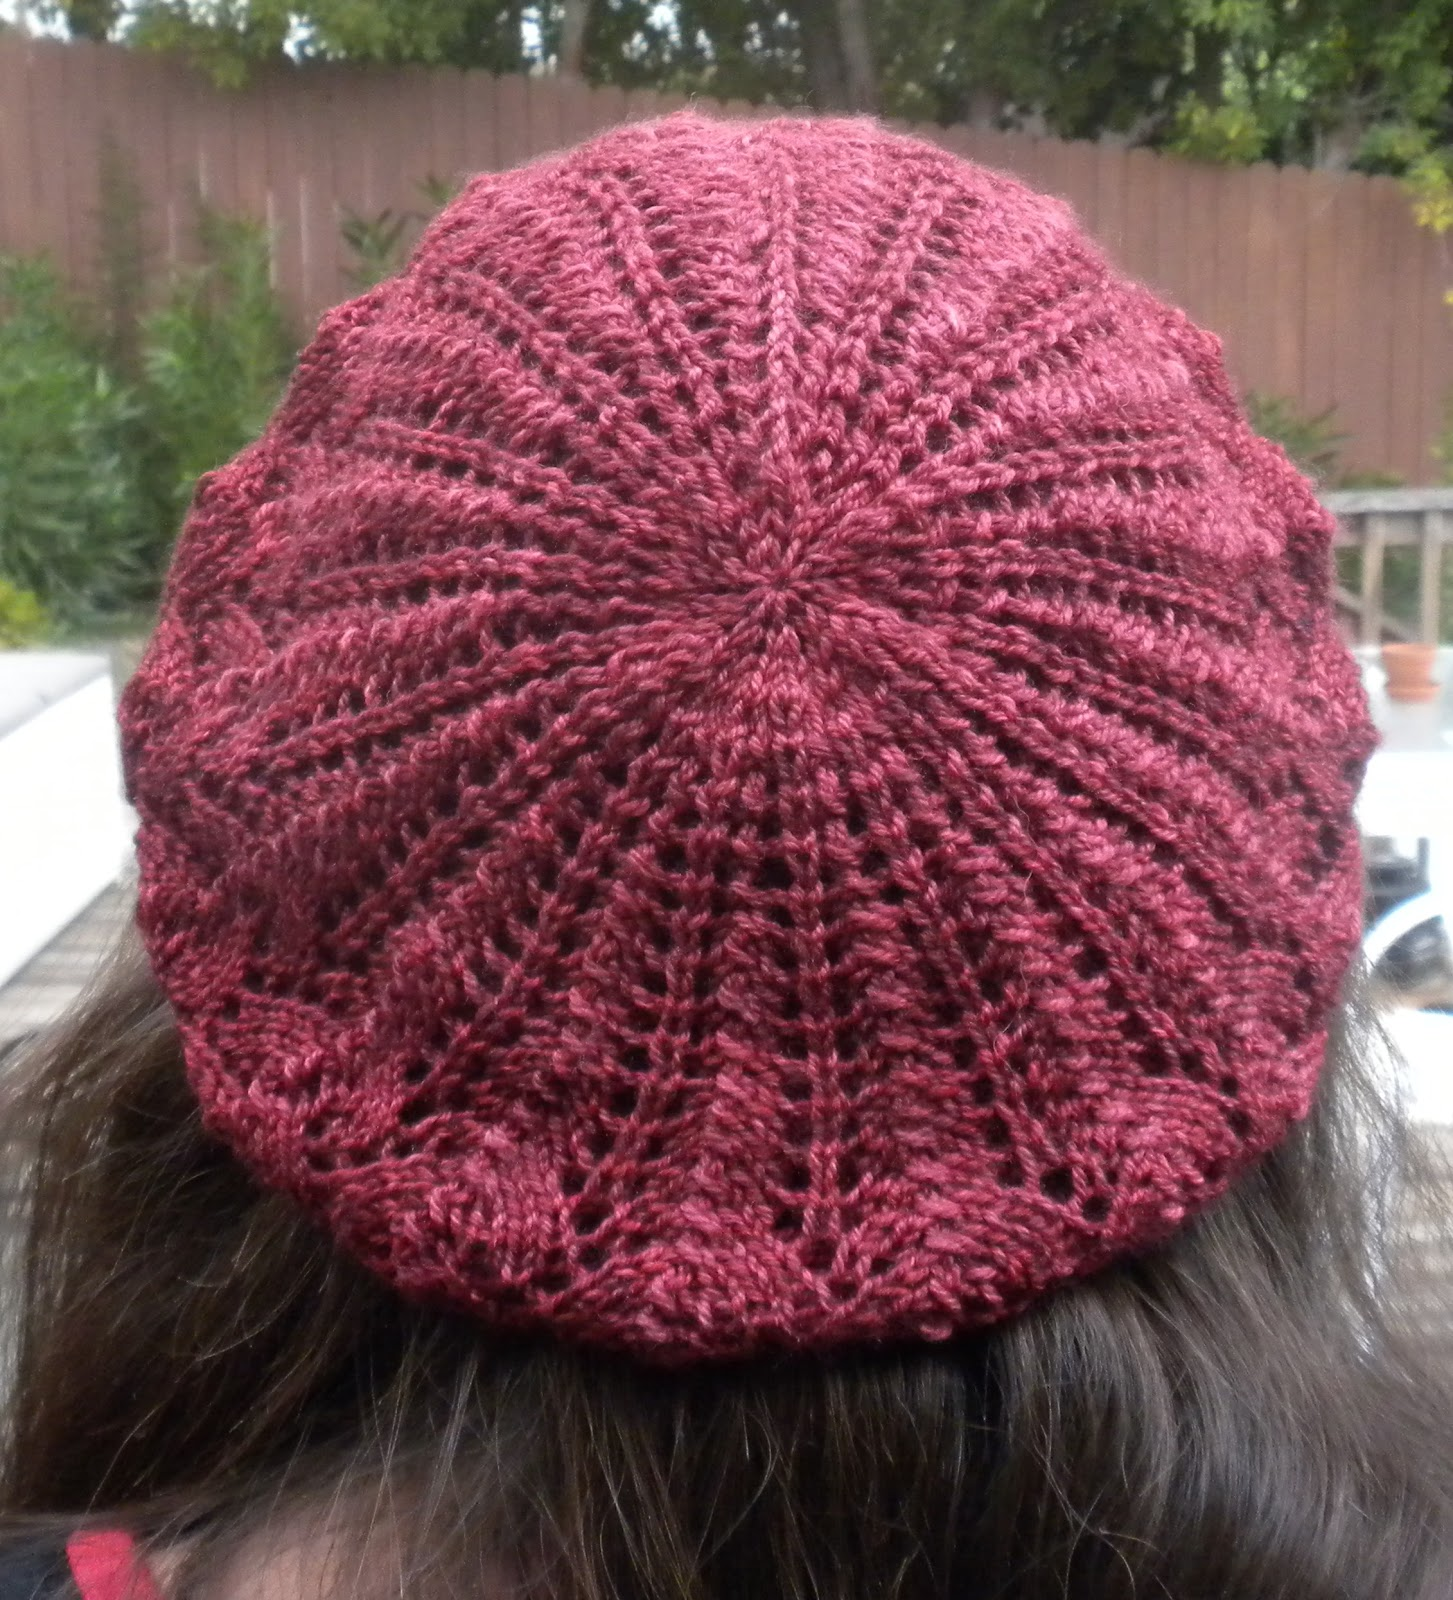 Knitting Pattern For Beret With Straight Needles : Nartian Knits